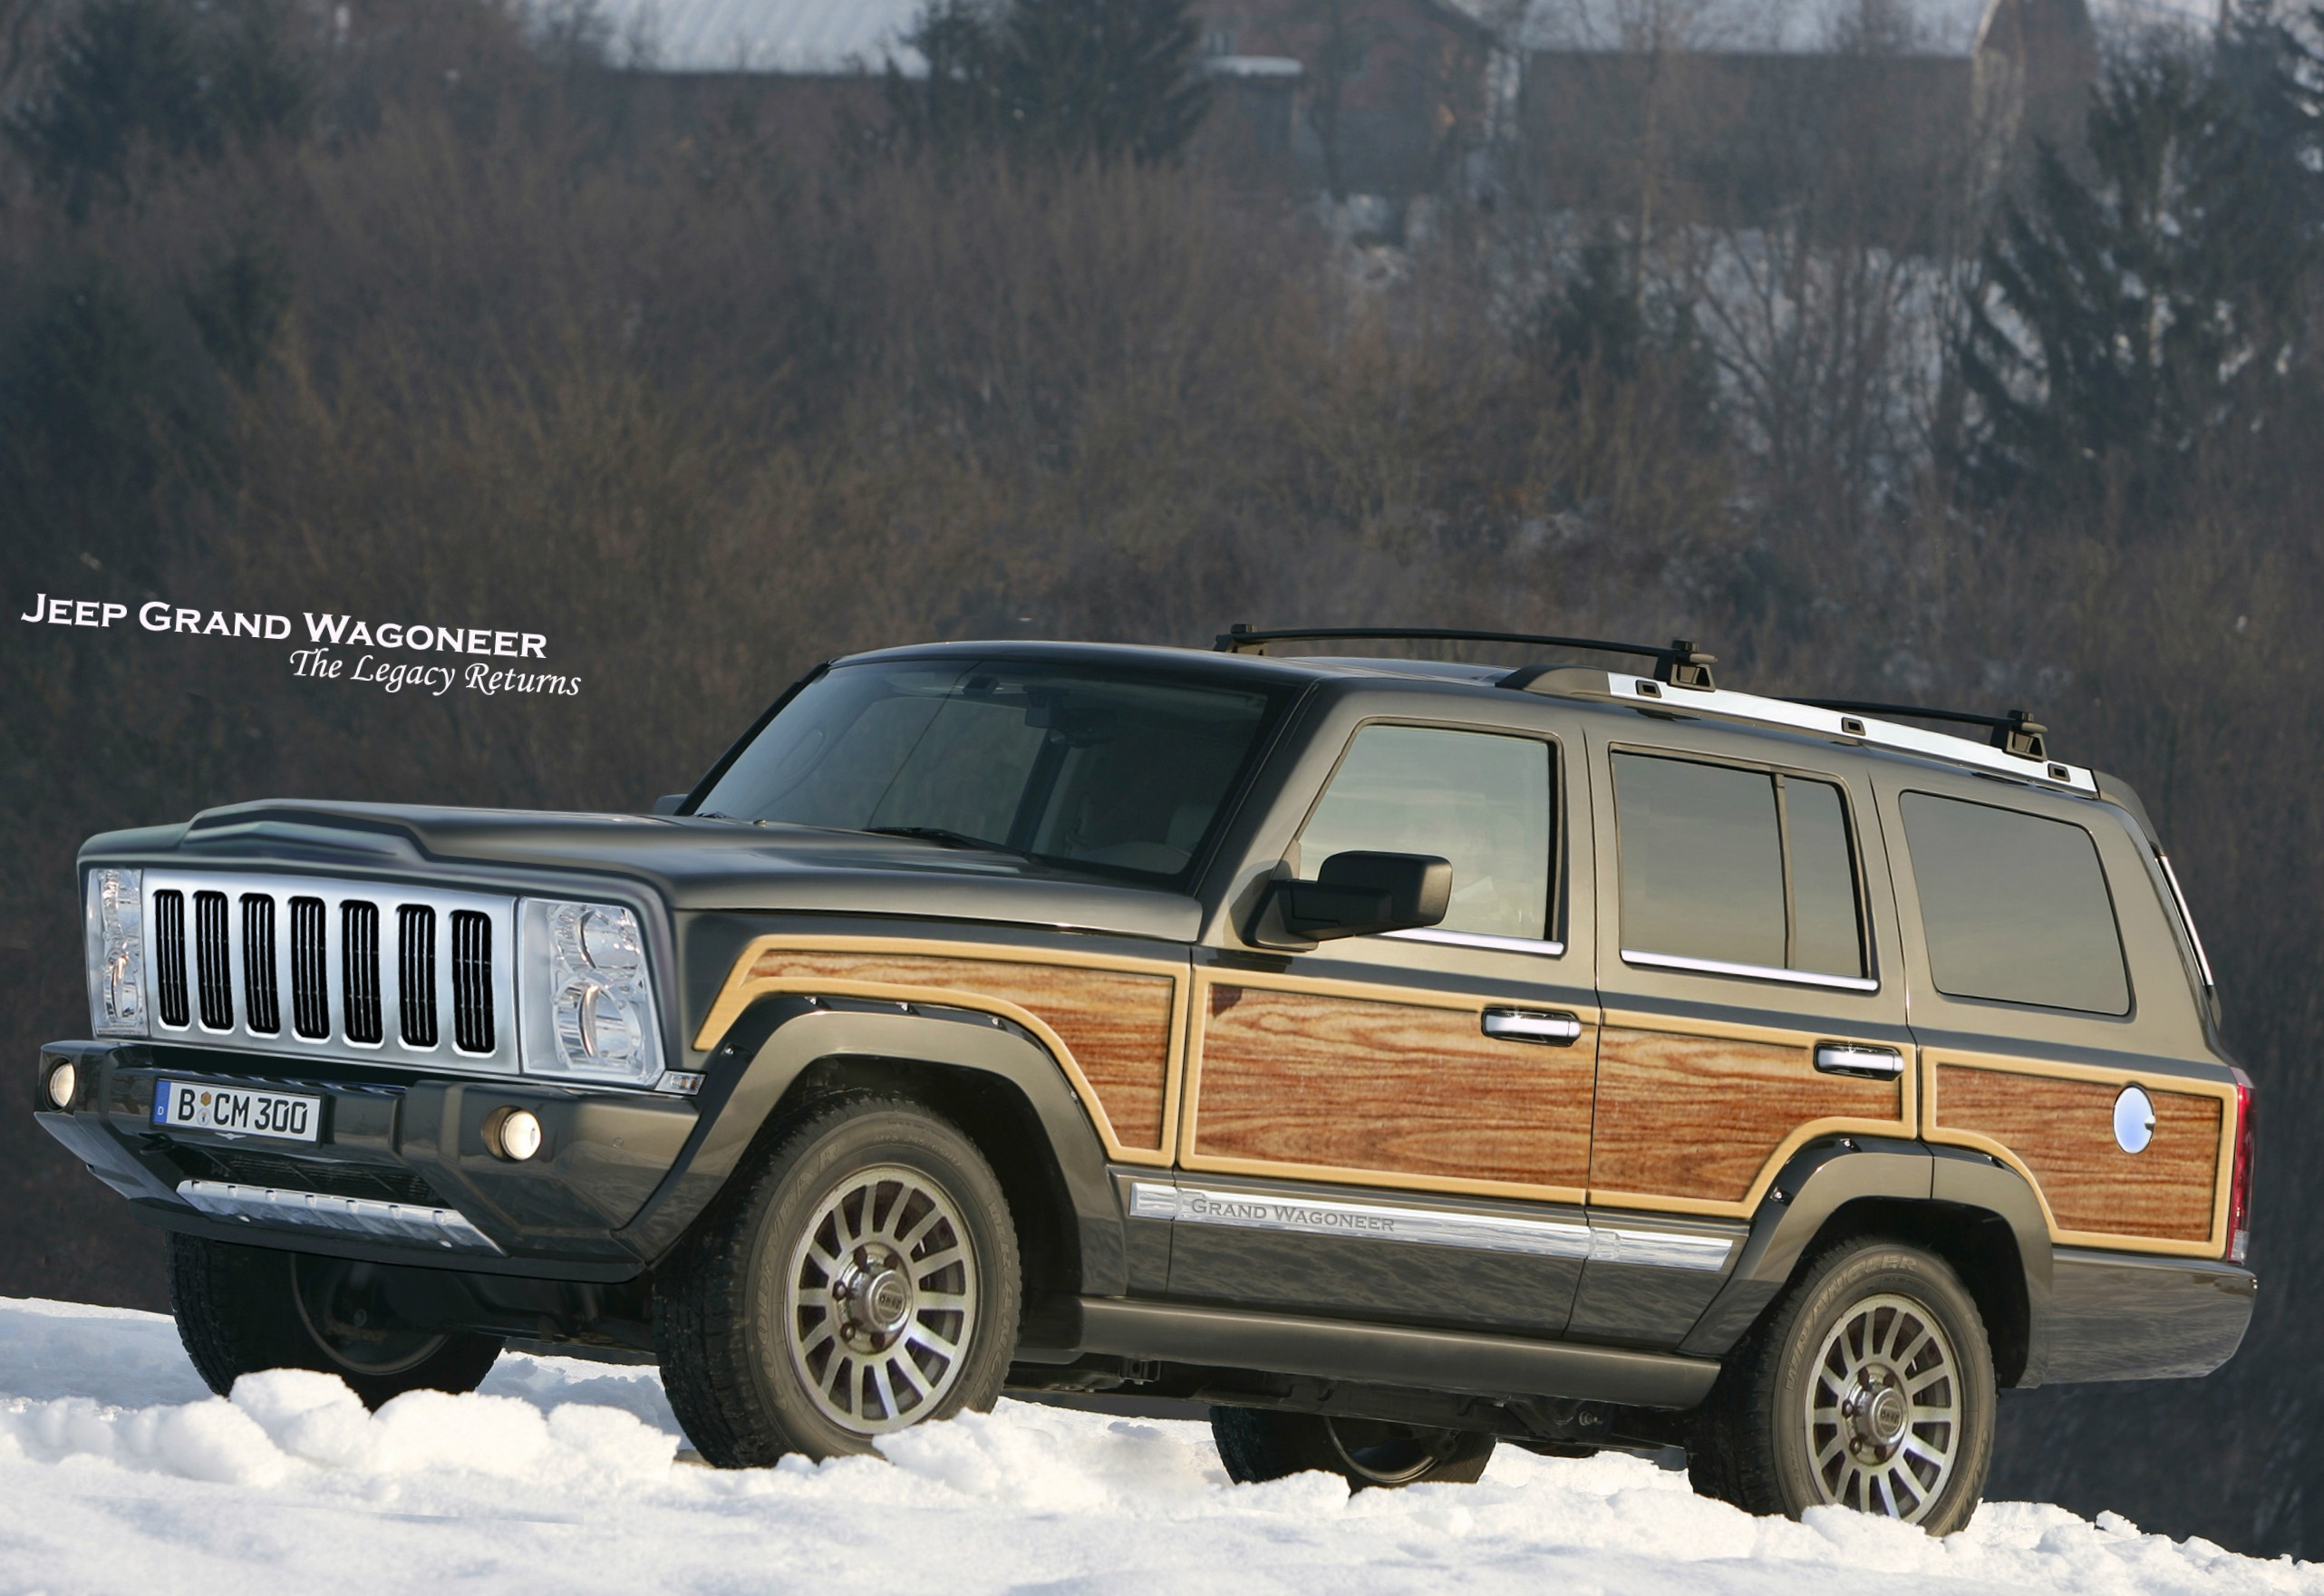 Jeep Grand Wagoneer >> New Jeep Grand Wagoneer To Be Presented To Dealers This Summer